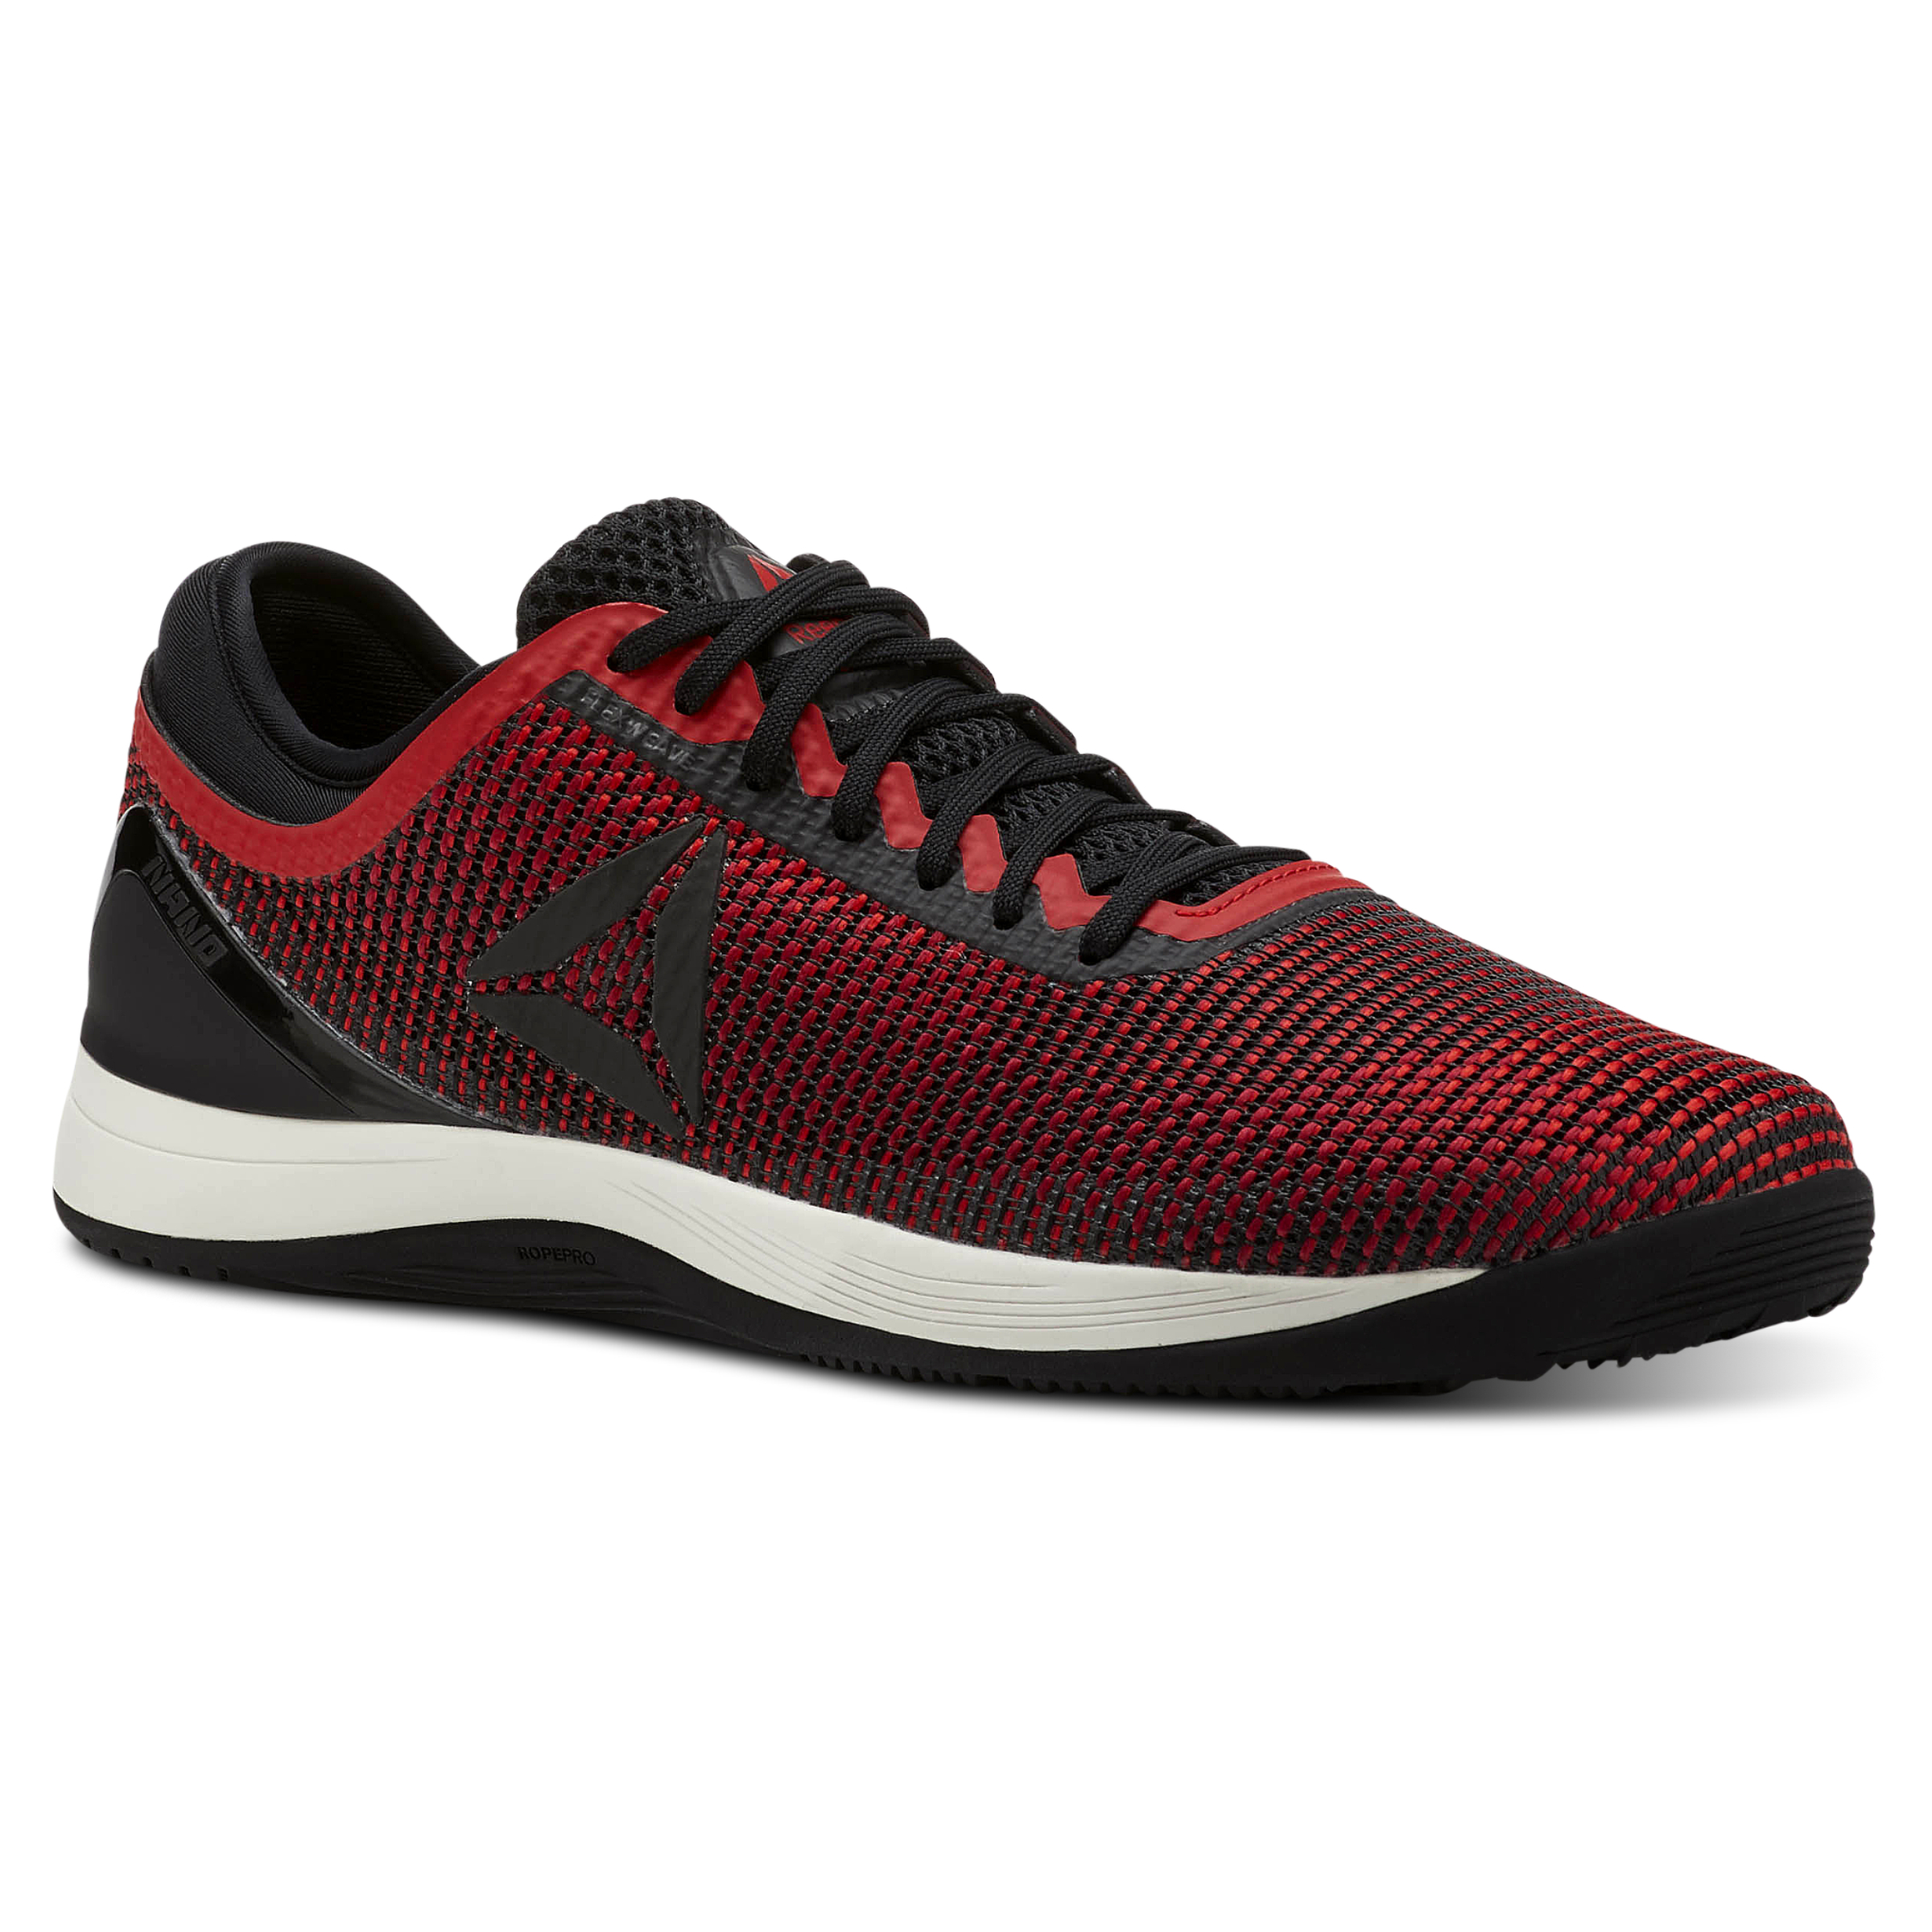 Reebok-CrossFit-Nano-8-Flexweave-Men-039-s-Shoes miniatura 28